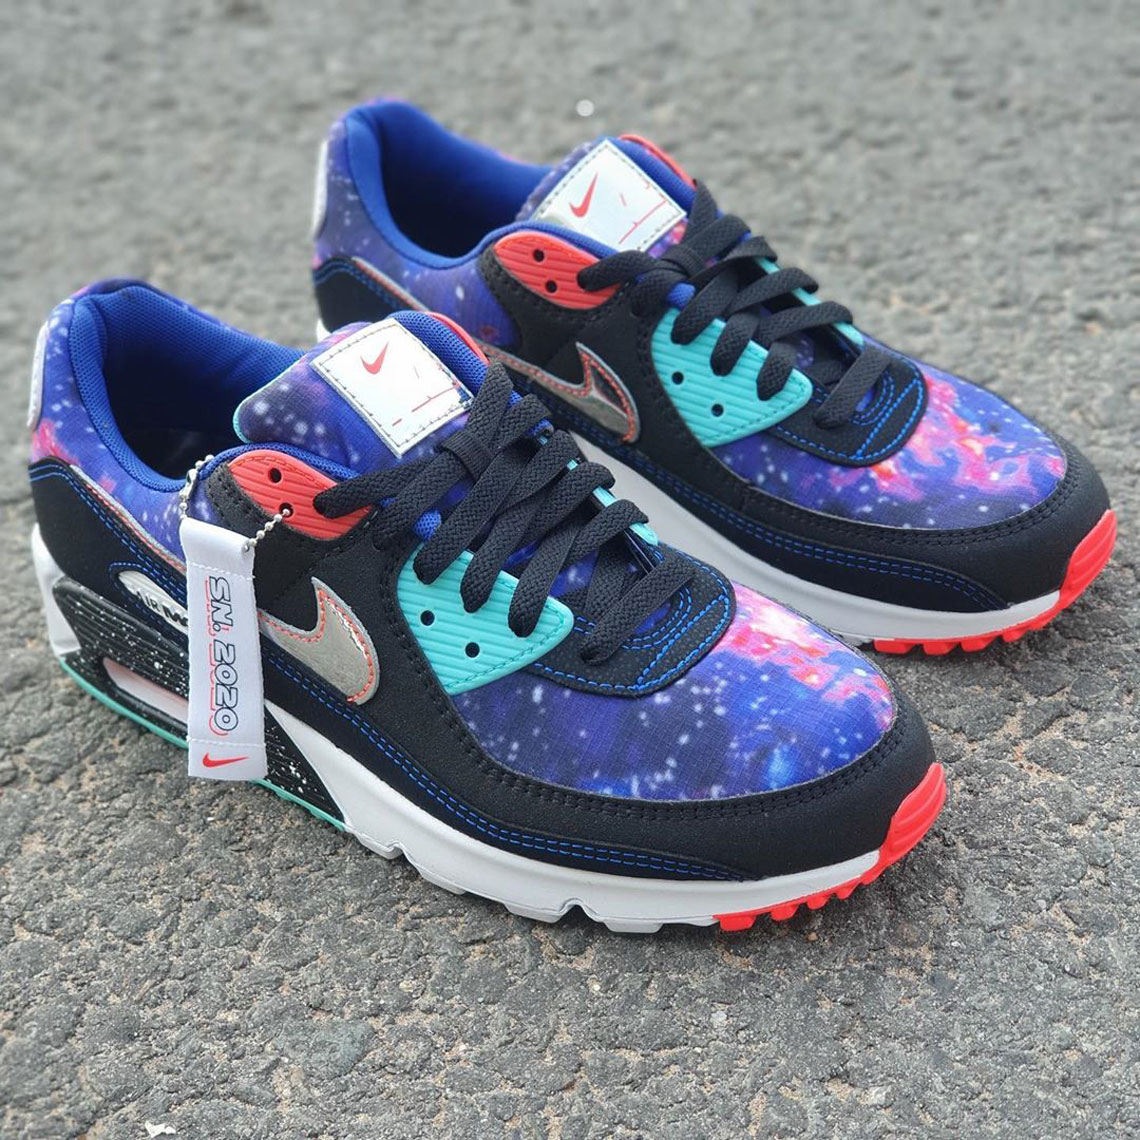 beneficioso Accor Ellos  Nike Air Max 90 Galaxy CW6018-001 Release Date | SneakerNews.com